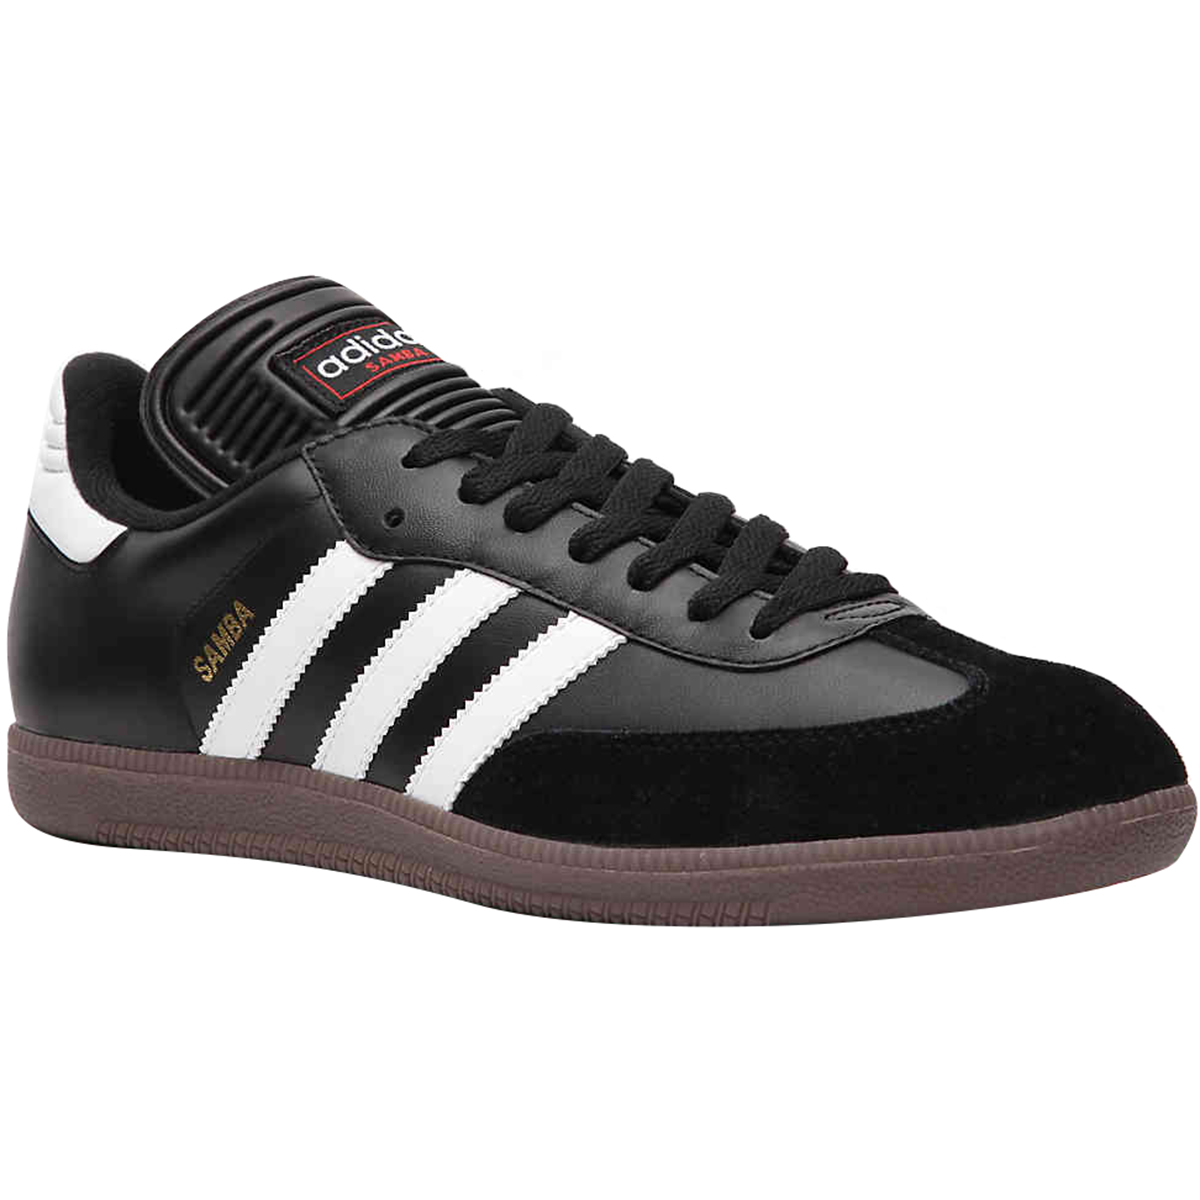 san francisco special sales classic fit Details about Adidas Samba Classic Leather Indoor Soccer Shoes -  Black/White/Gum